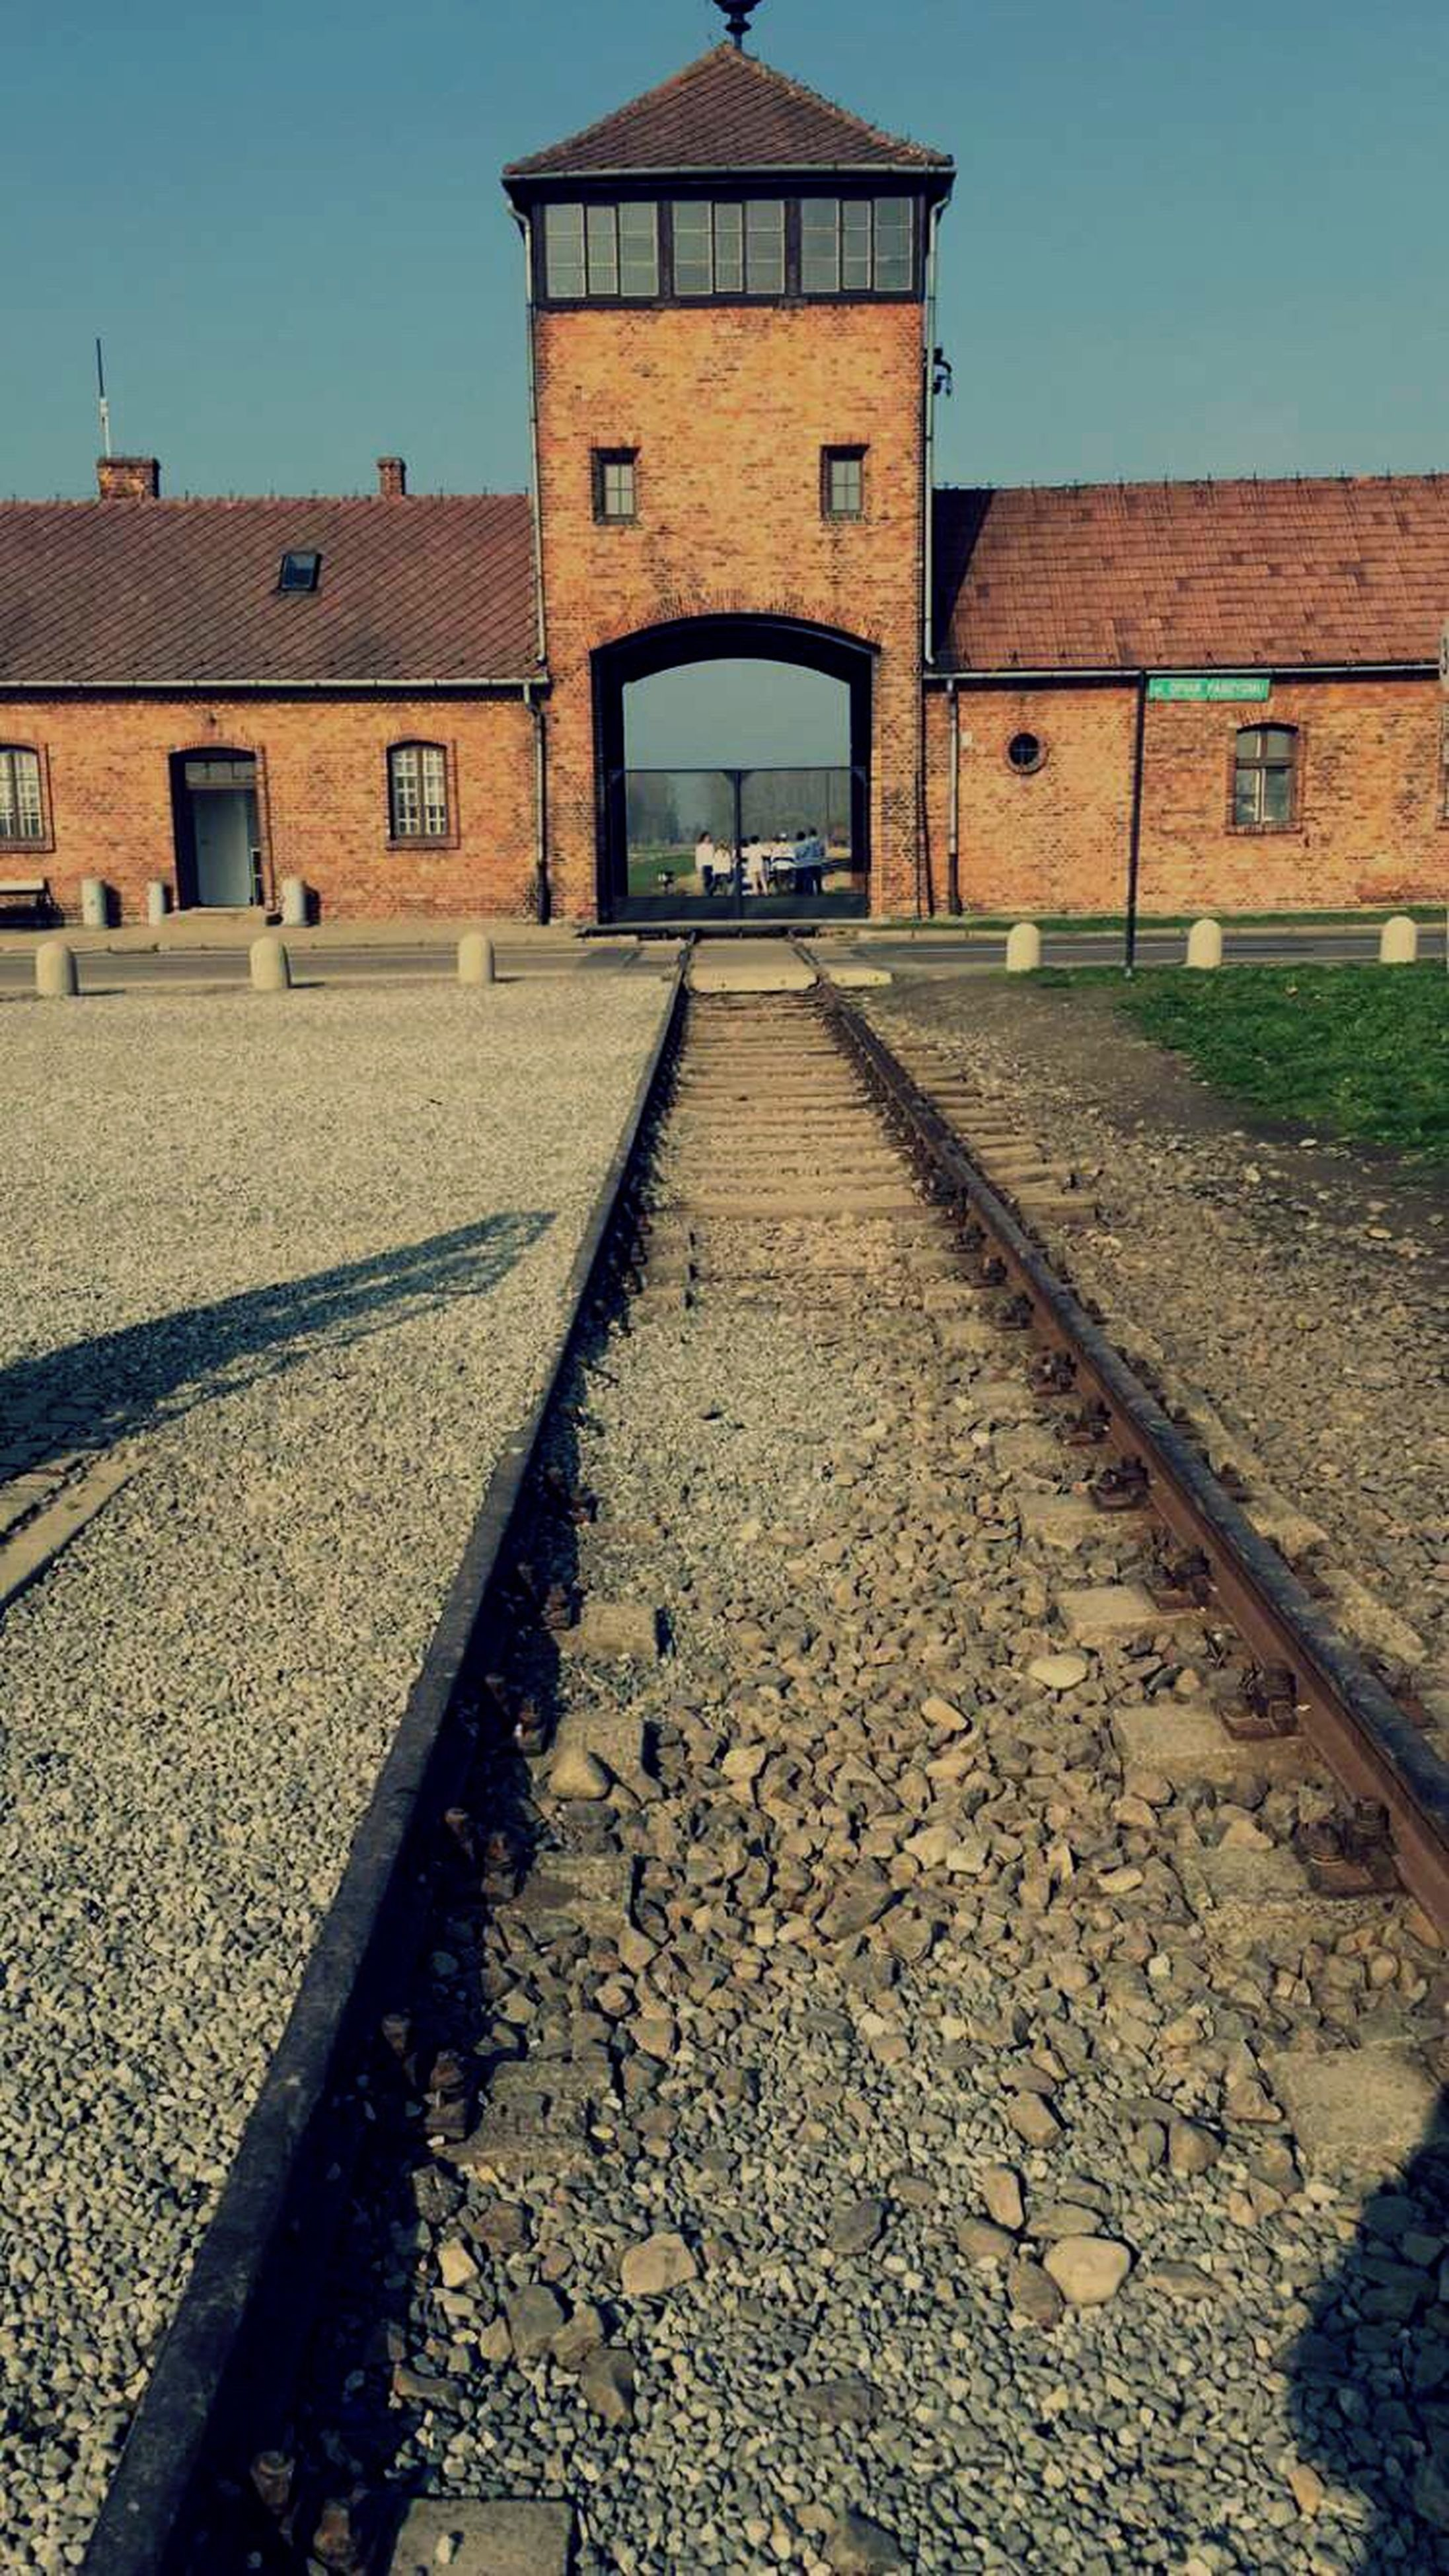 architecture, built structure, building exterior, the way forward, diminishing perspective, clear sky, transportation, vanishing point, cobblestone, house, residential structure, street, surface level, residential building, sky, day, railroad track, building, city, outdoors